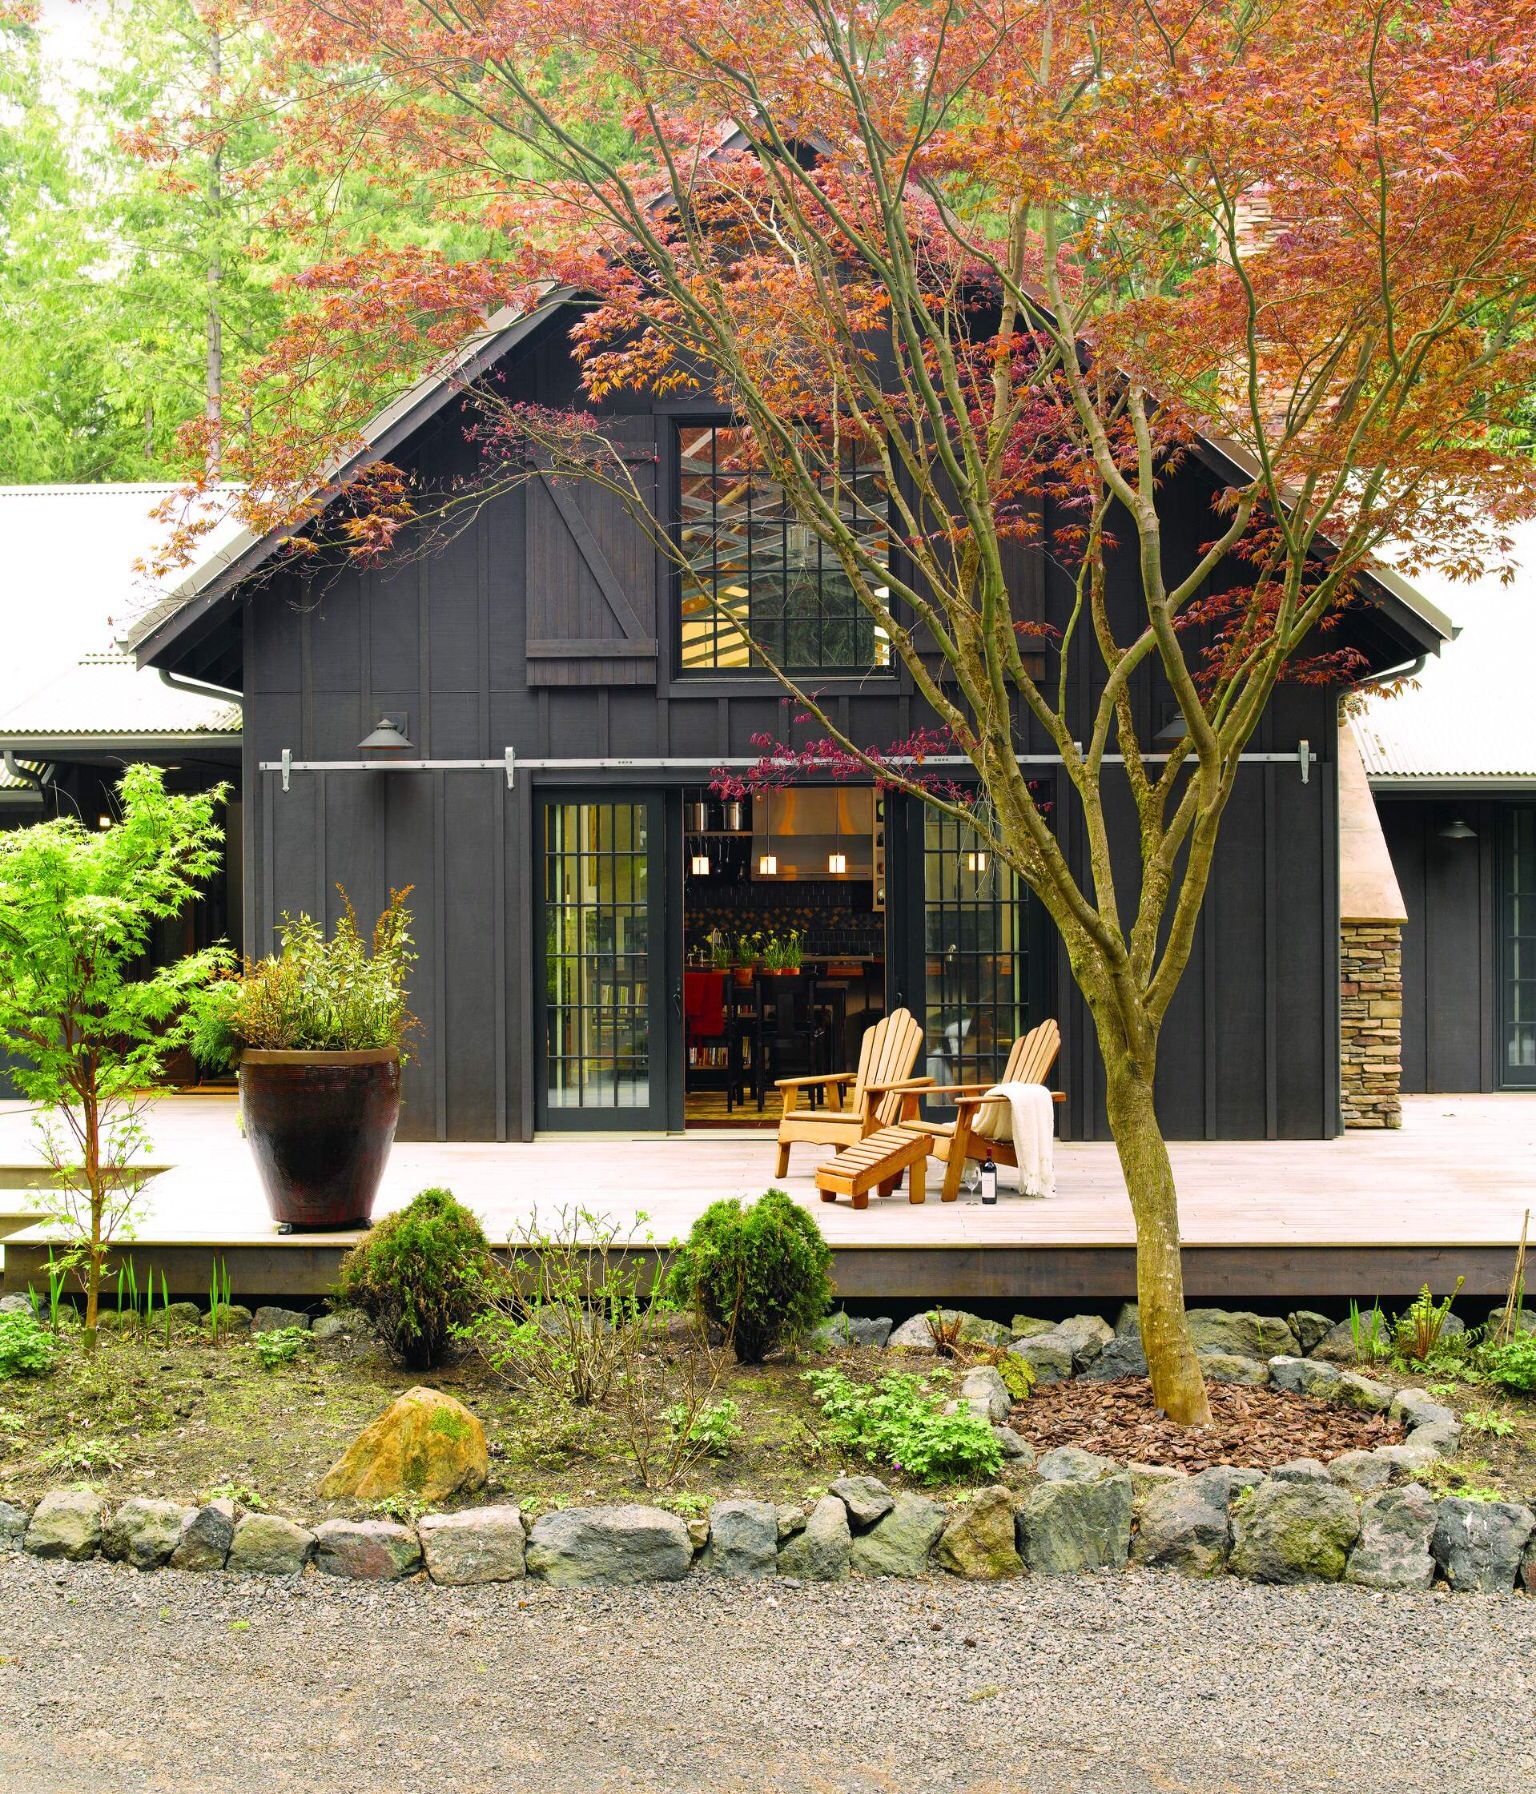 Home Deck Colors House: Black Pole Barn With Wrap Around Deck